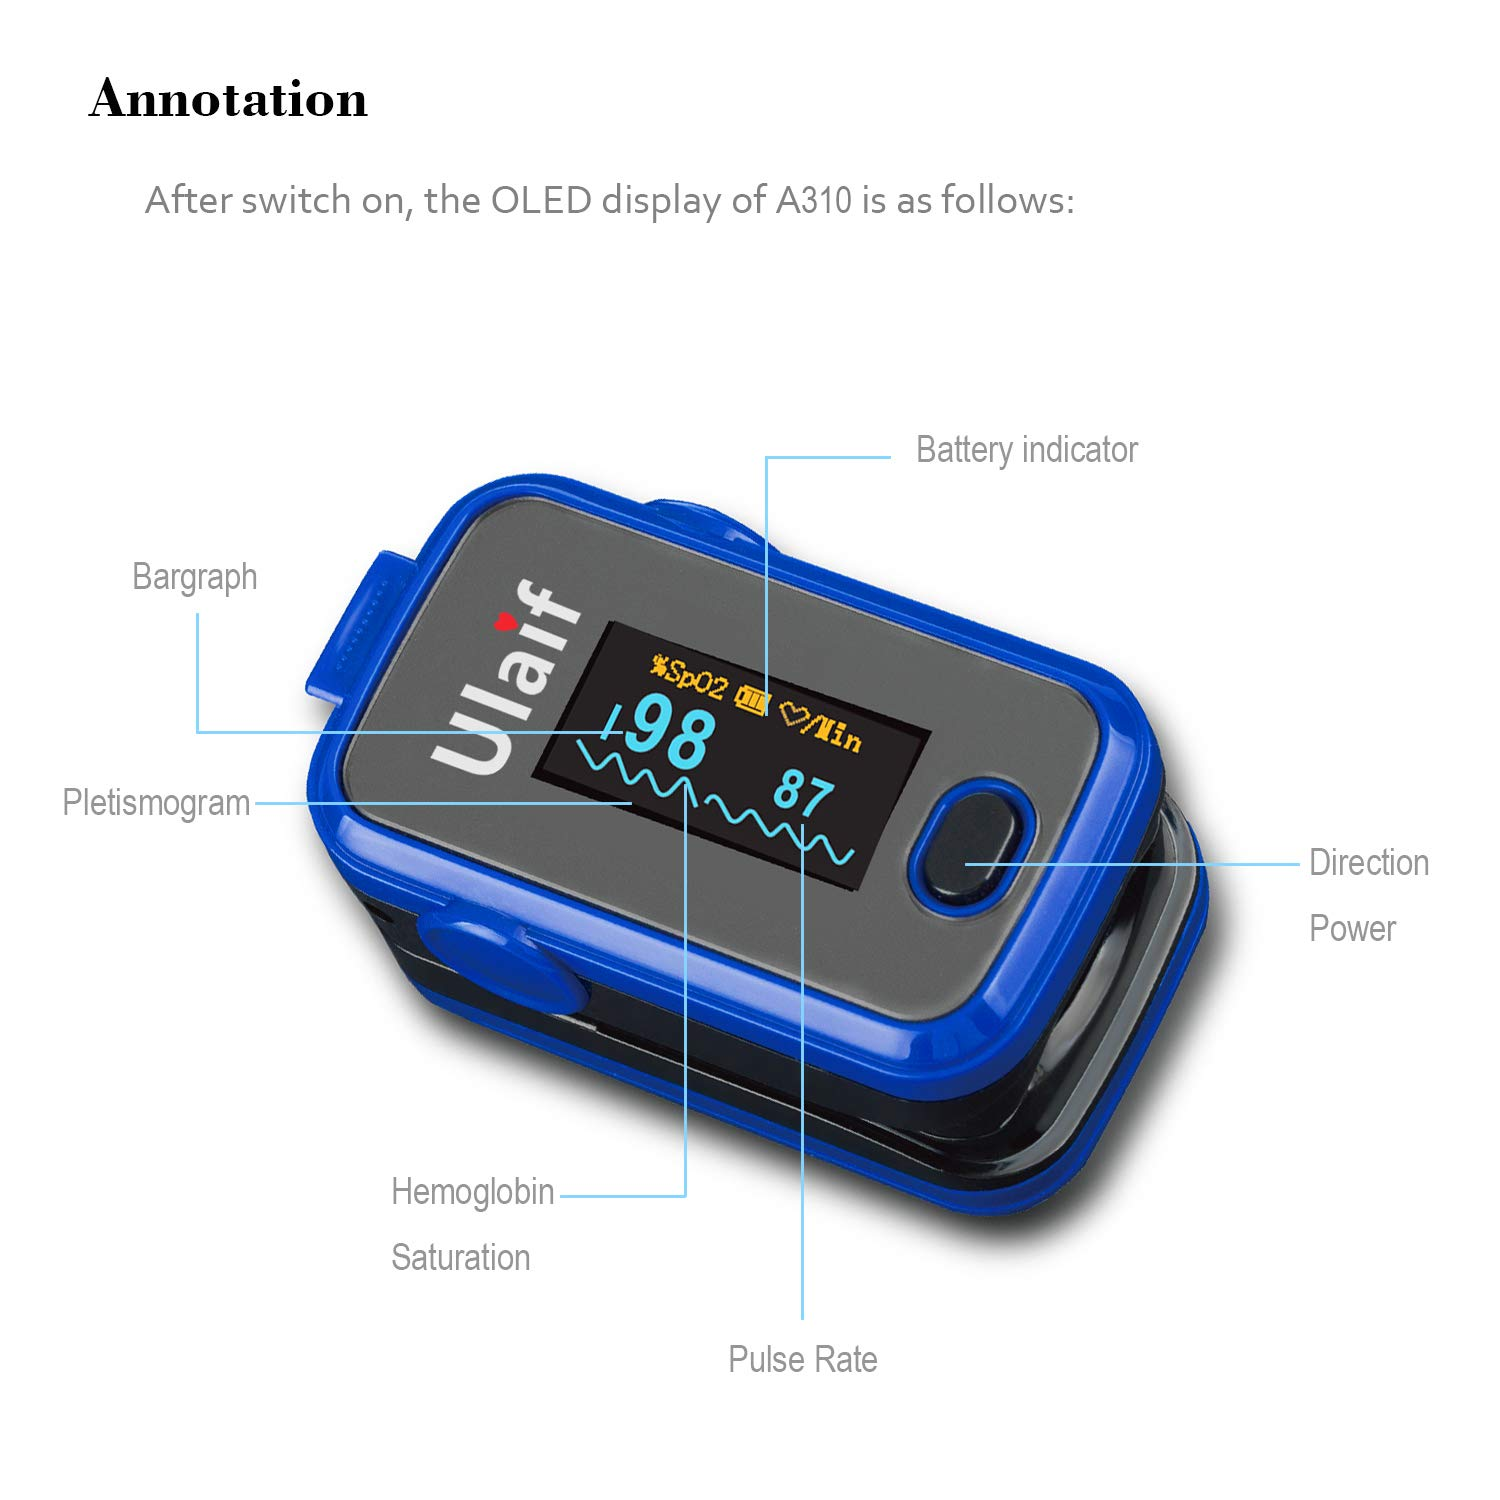 ULAIF Fingertip Pulse Oximeter with OLED Display Portable Oximetry